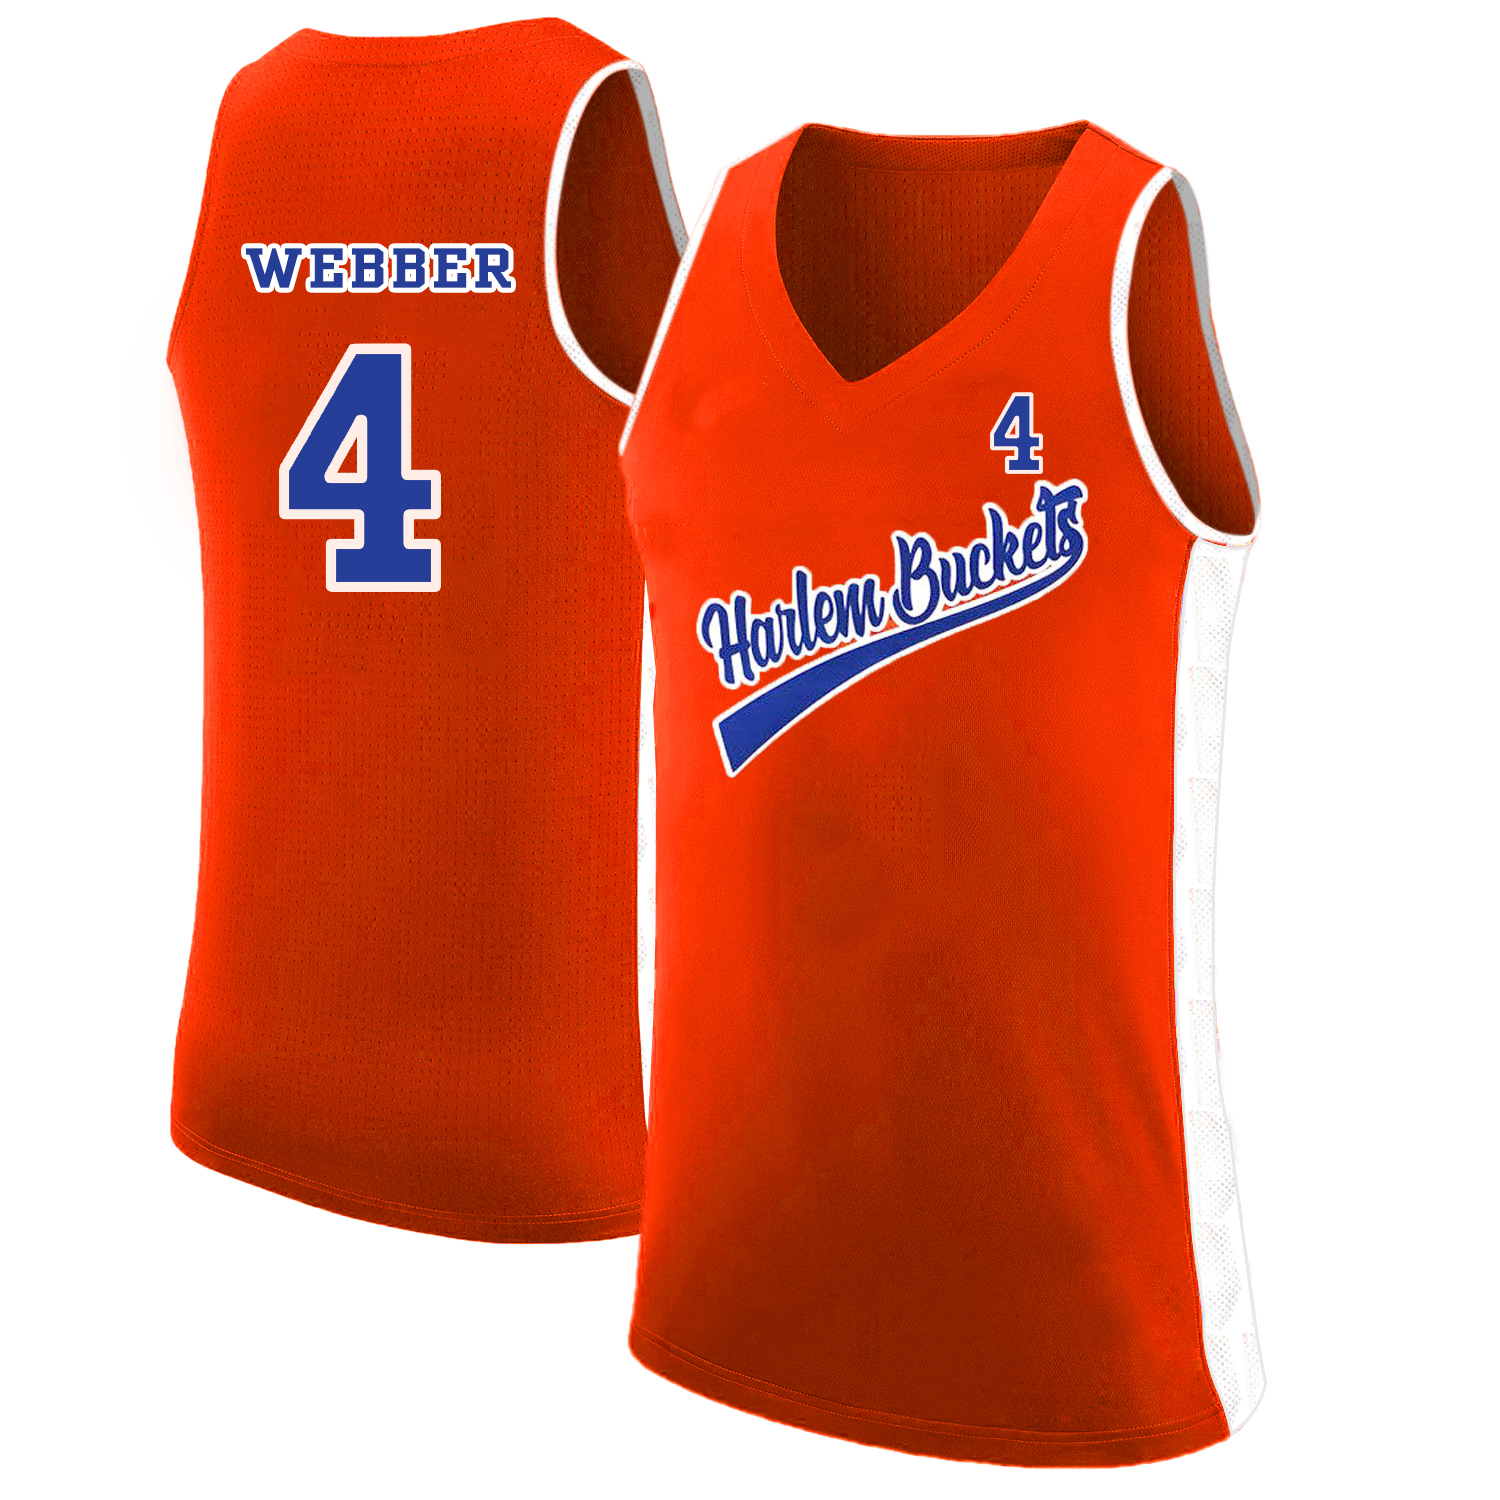 Harlem Buckets 4 Chris Webber Orange Uncle Drew Basketball Jersey